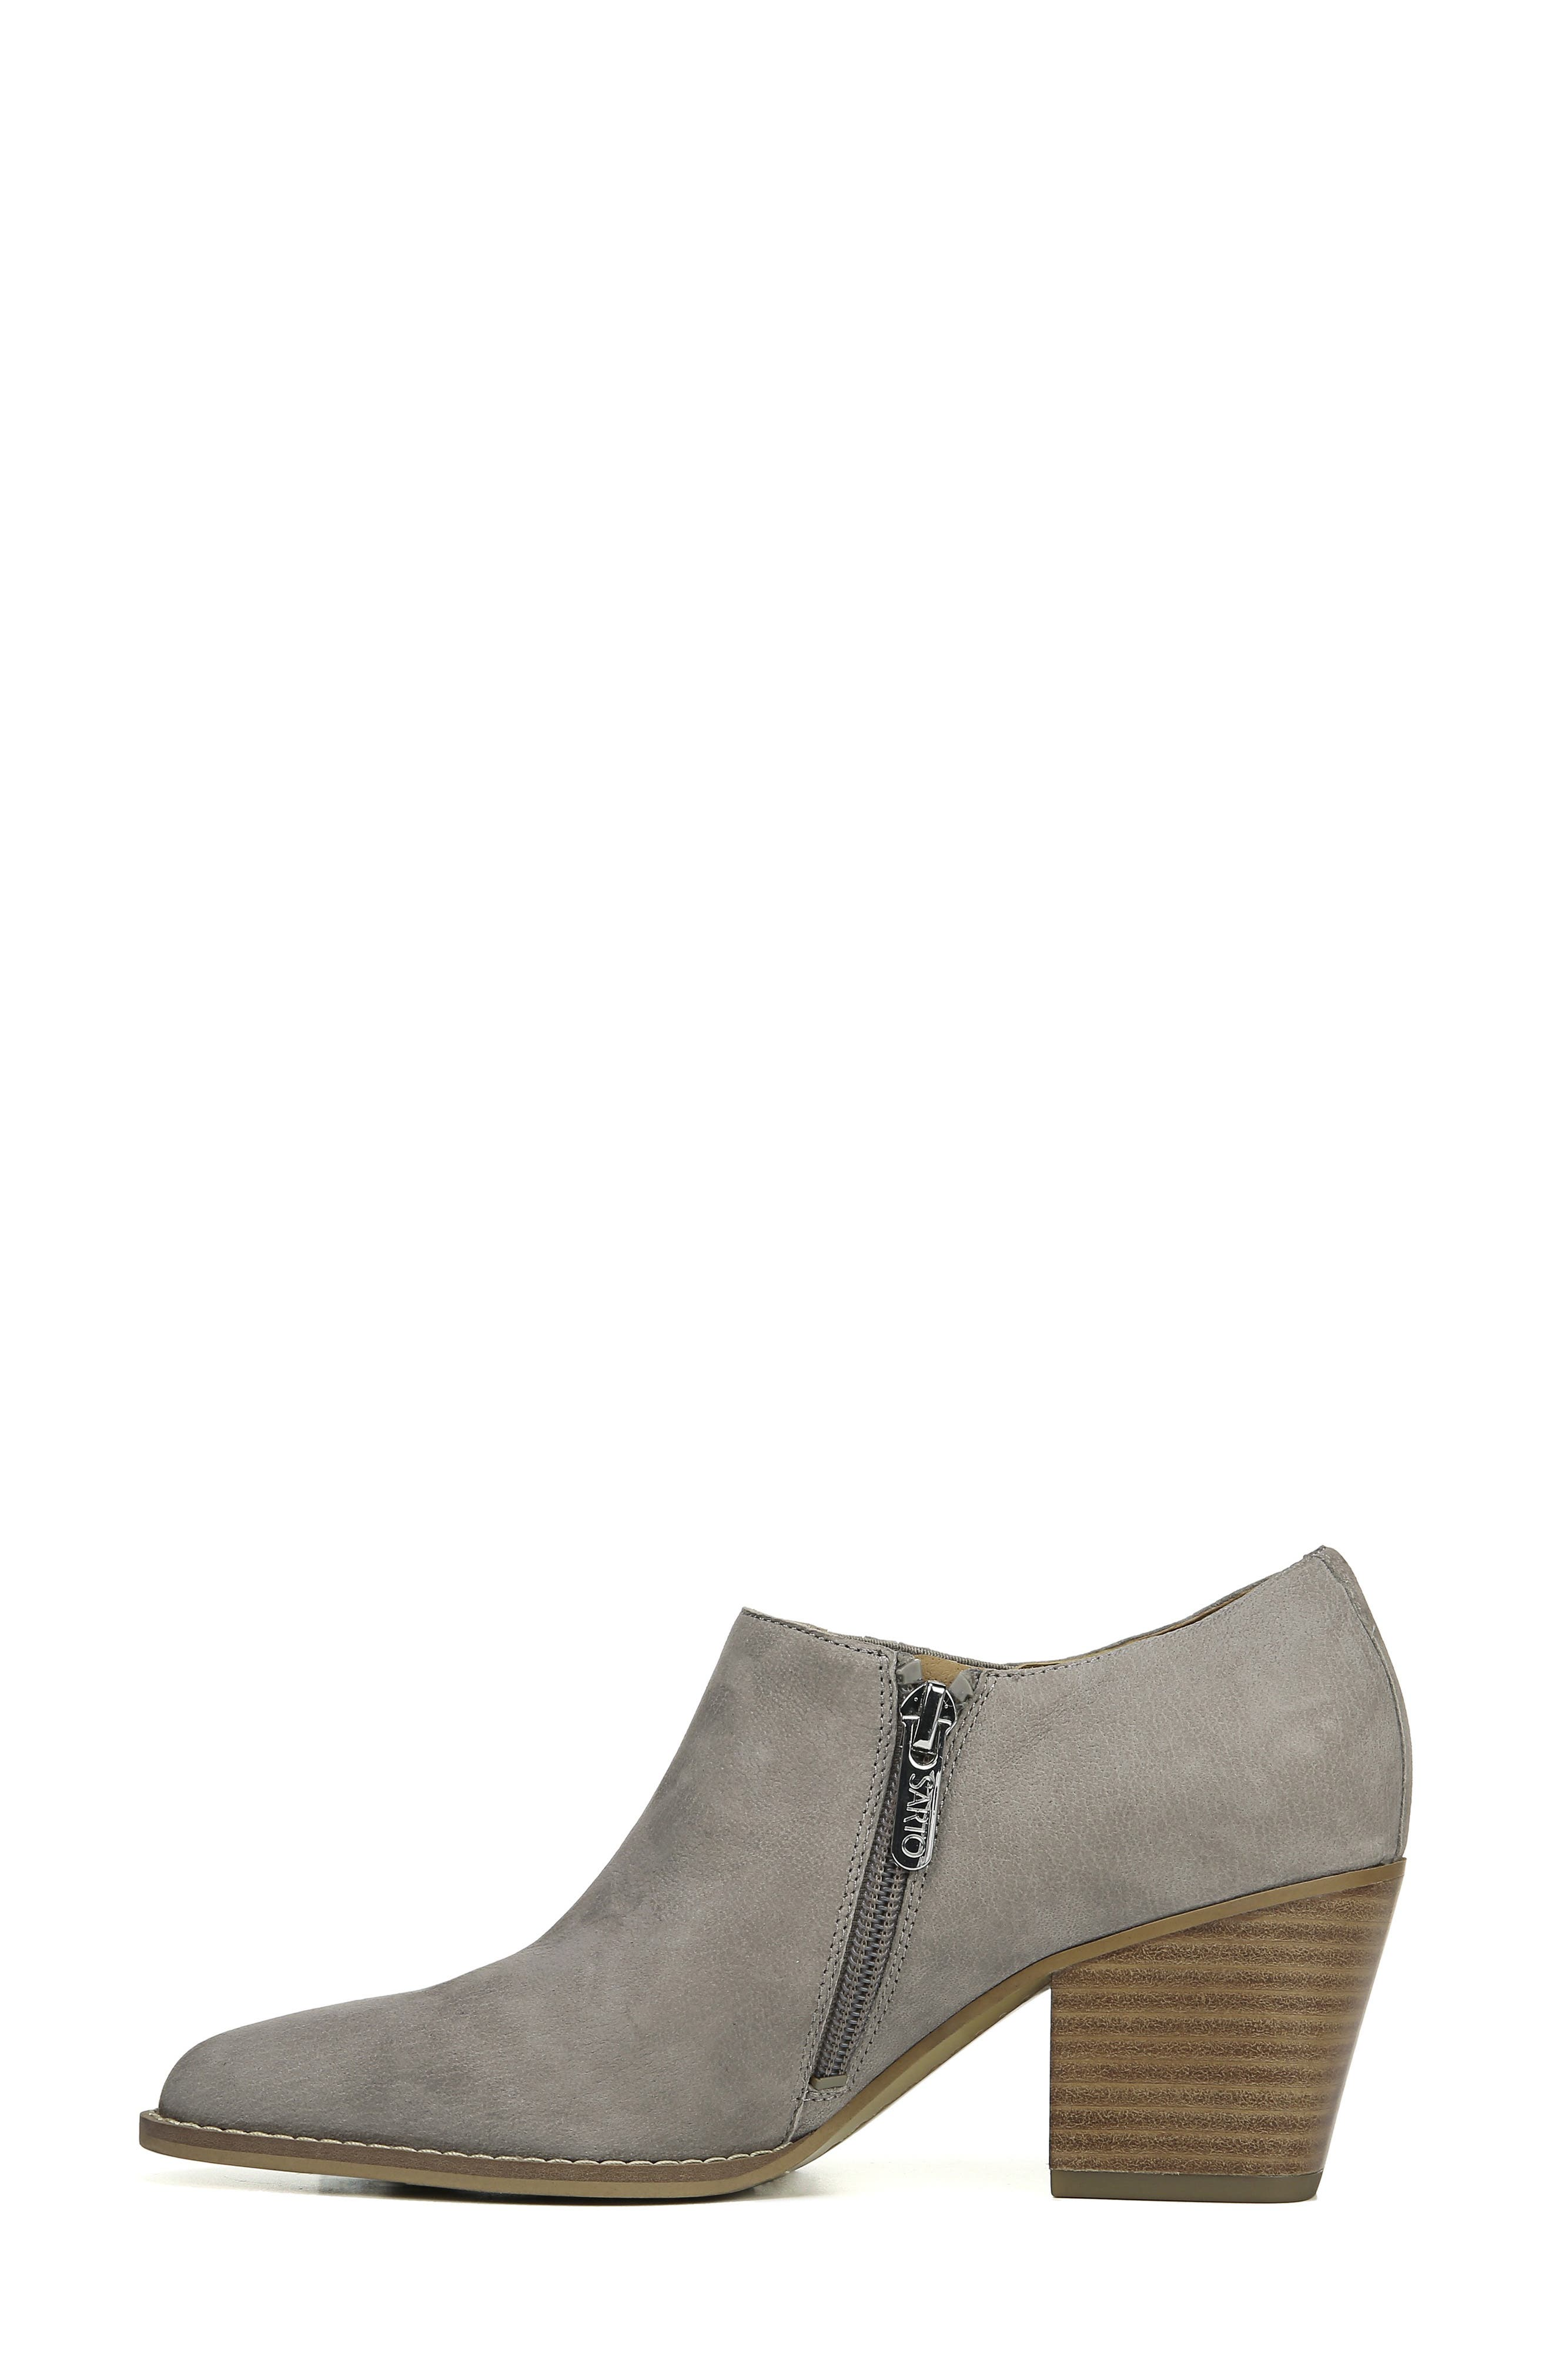 Camella Bootie,                             Alternate thumbnail 9, color,                             GREYSTONE NUBUCK LEATHER